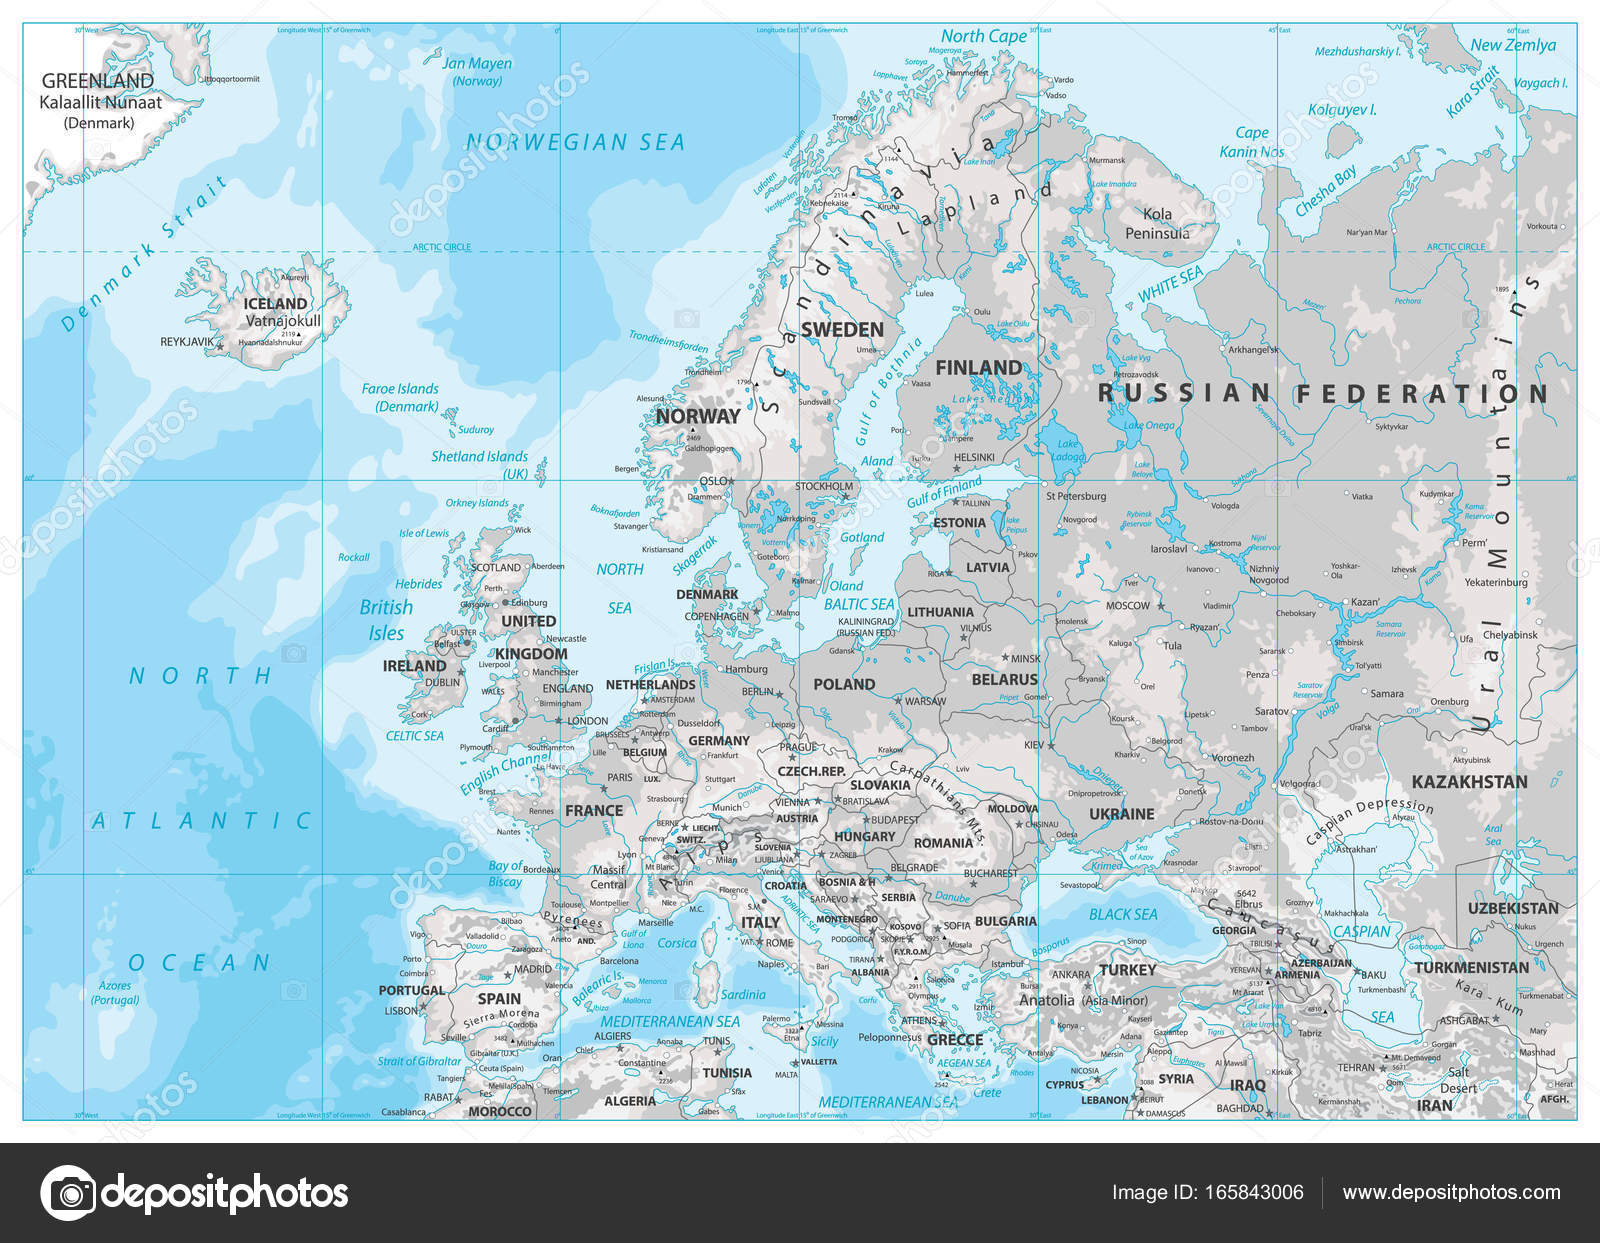 Europe Physical Map. White and Gray — Stock Vector ...